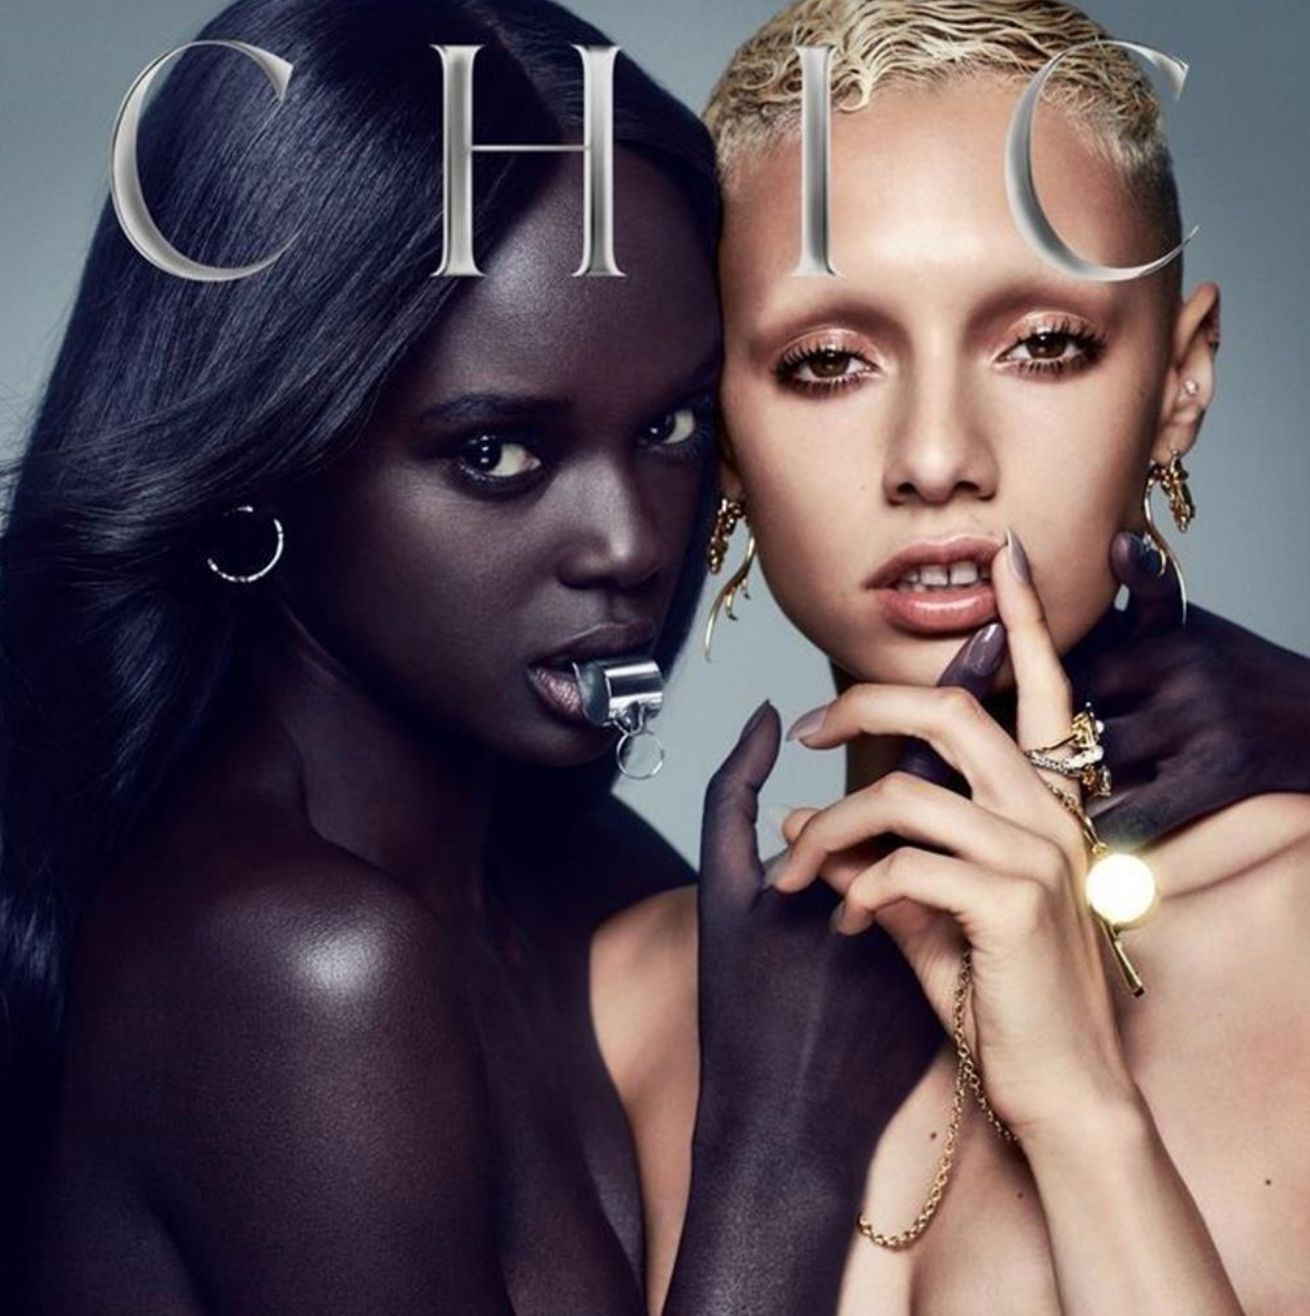 chic its about time stream album rodgers Nile Rodgers & Chic unveil comeback album, Its About Time: Stream